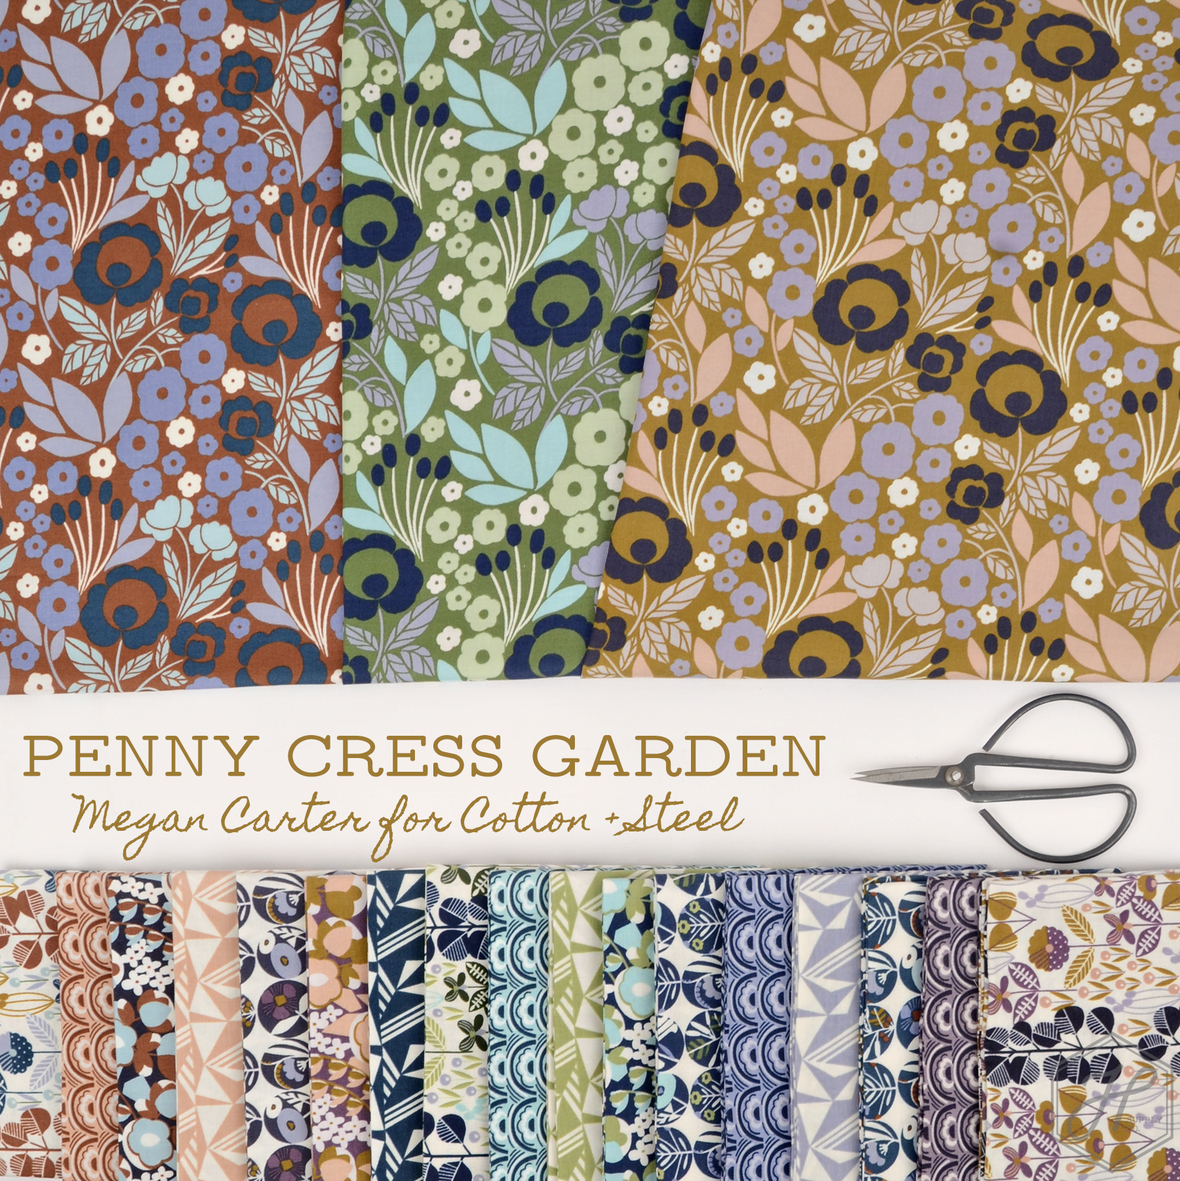 Penny Cress Garden Megan Carter for Cotton and Steel at Hawthorne Supply Co